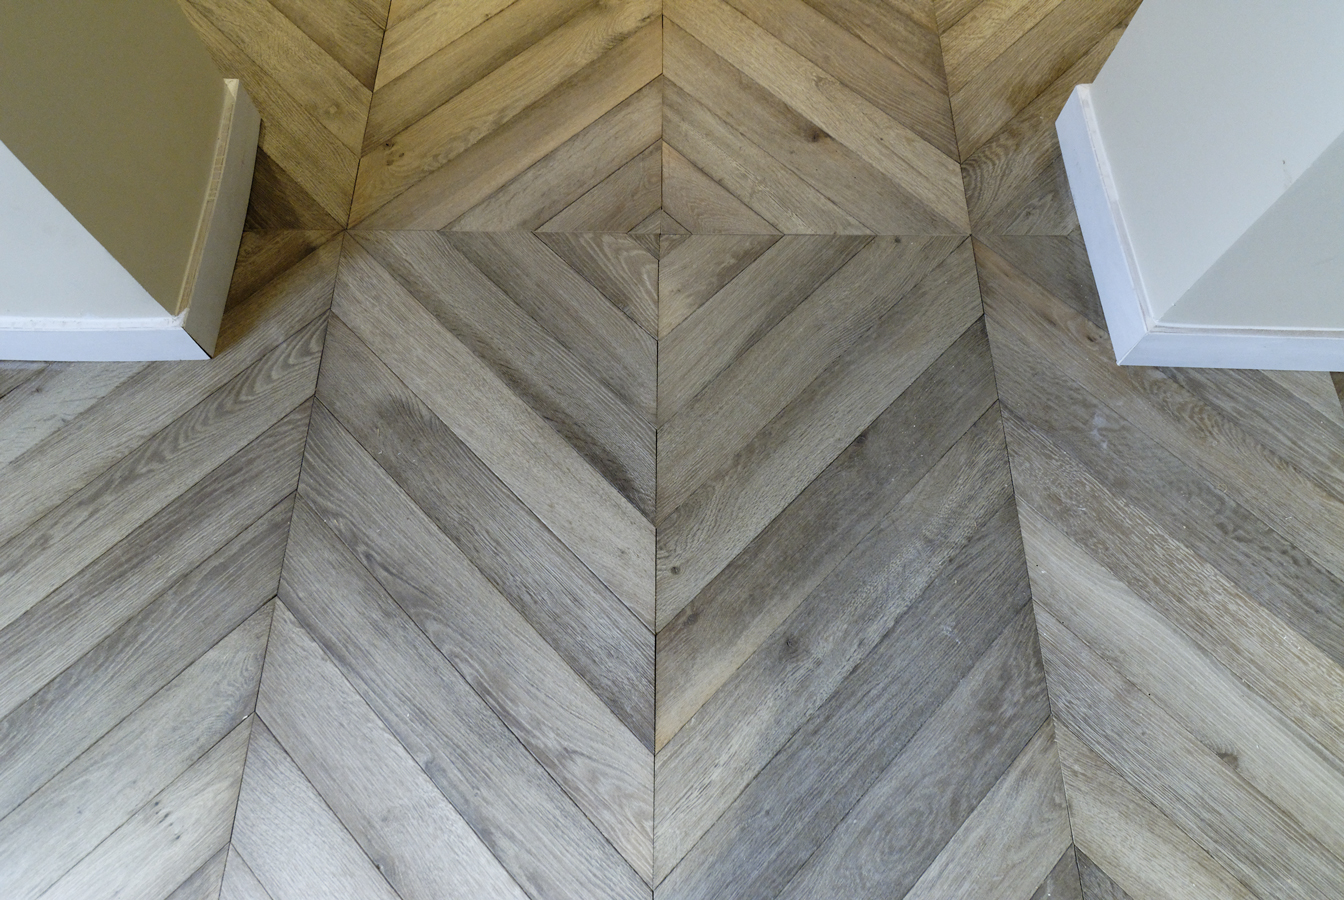 dans l 39 entr e le parquet chevron gris est invers au milieu de la pi ce parquet gris n 713. Black Bedroom Furniture Sets. Home Design Ideas